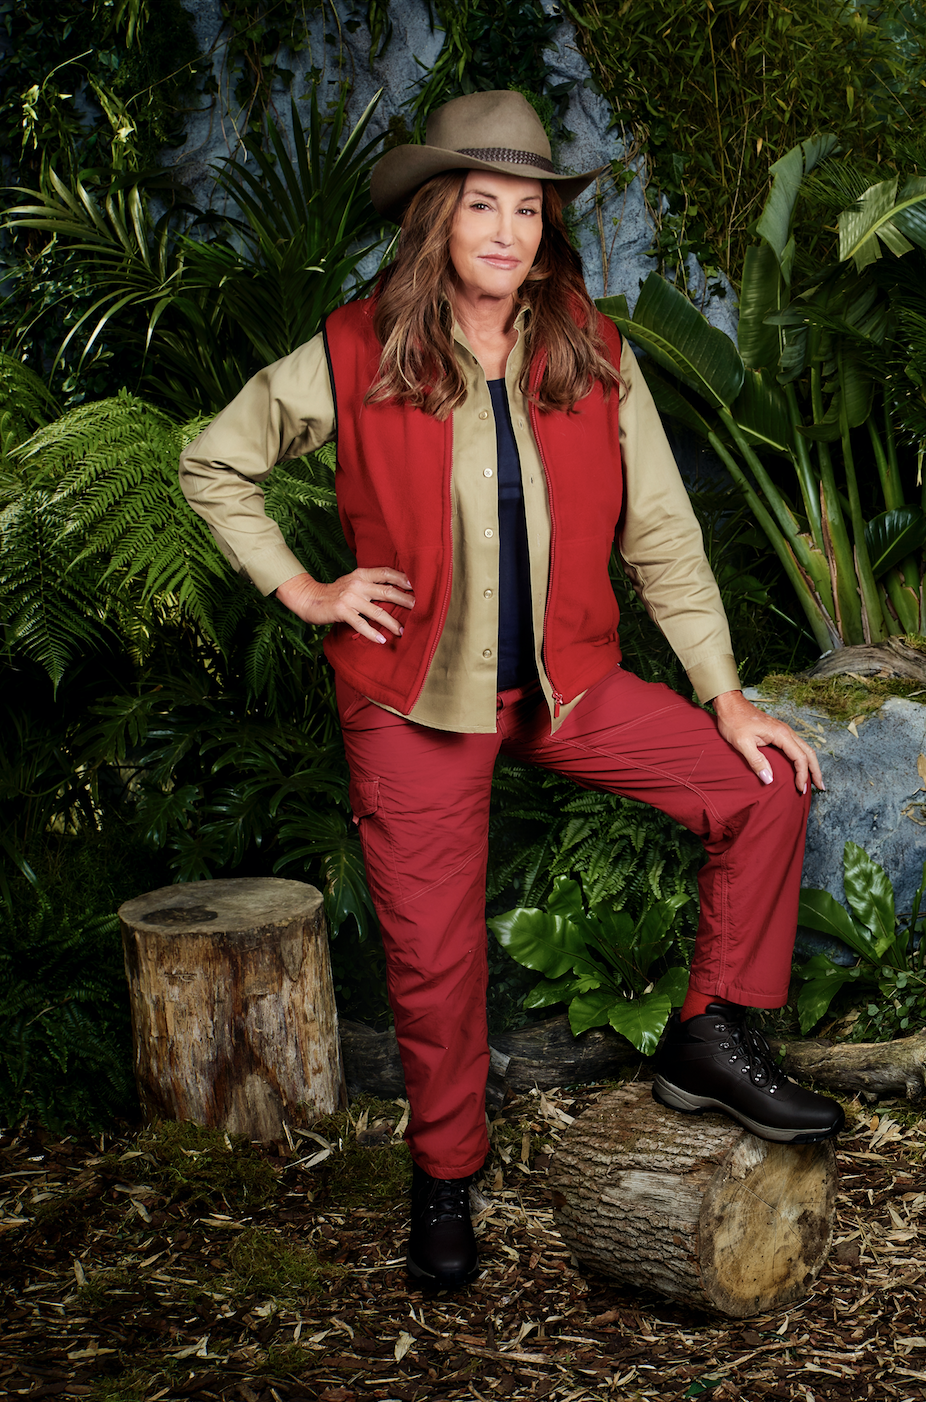 New I'm a Celebrity star Caitlyn Jenner has already competed on the show once before